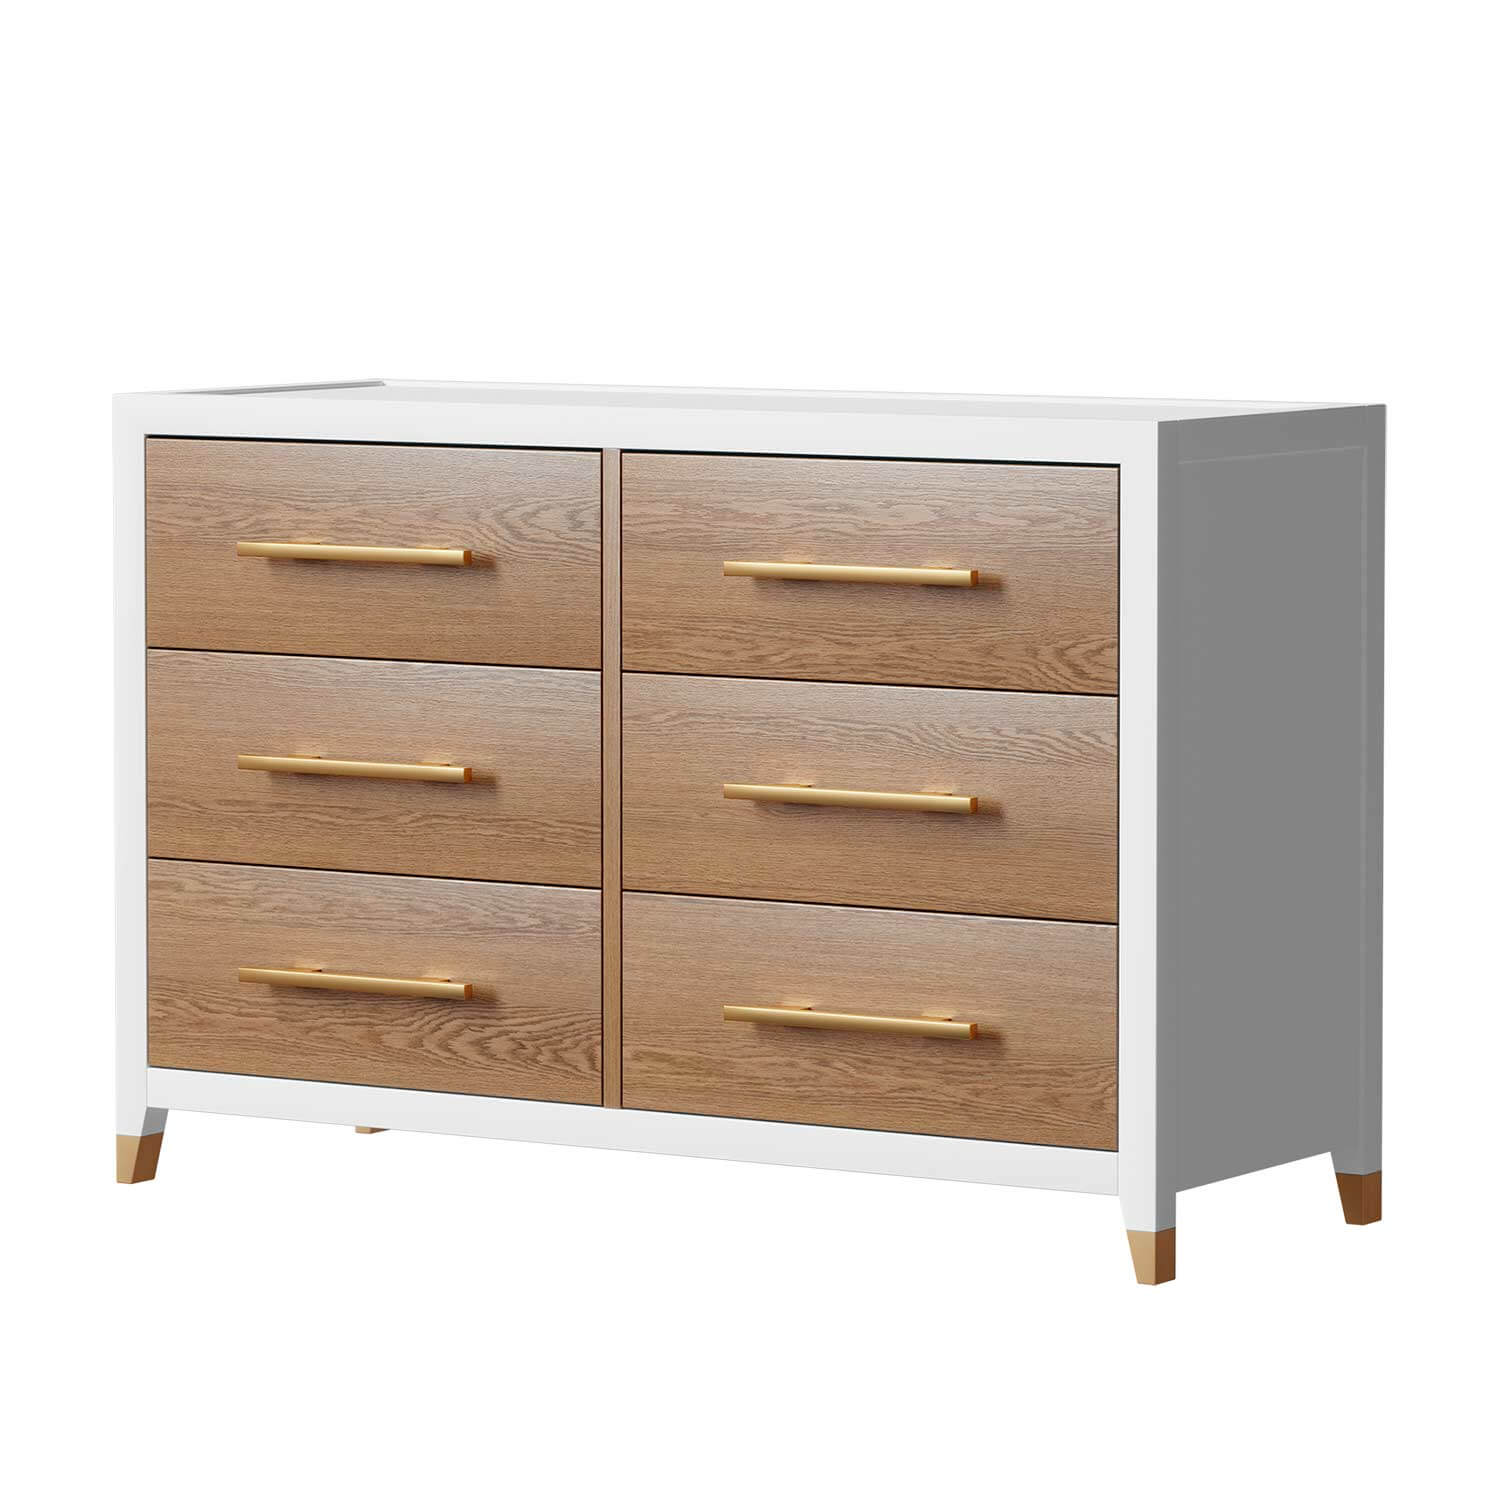 Chest-drawers-N2-Arnika-2